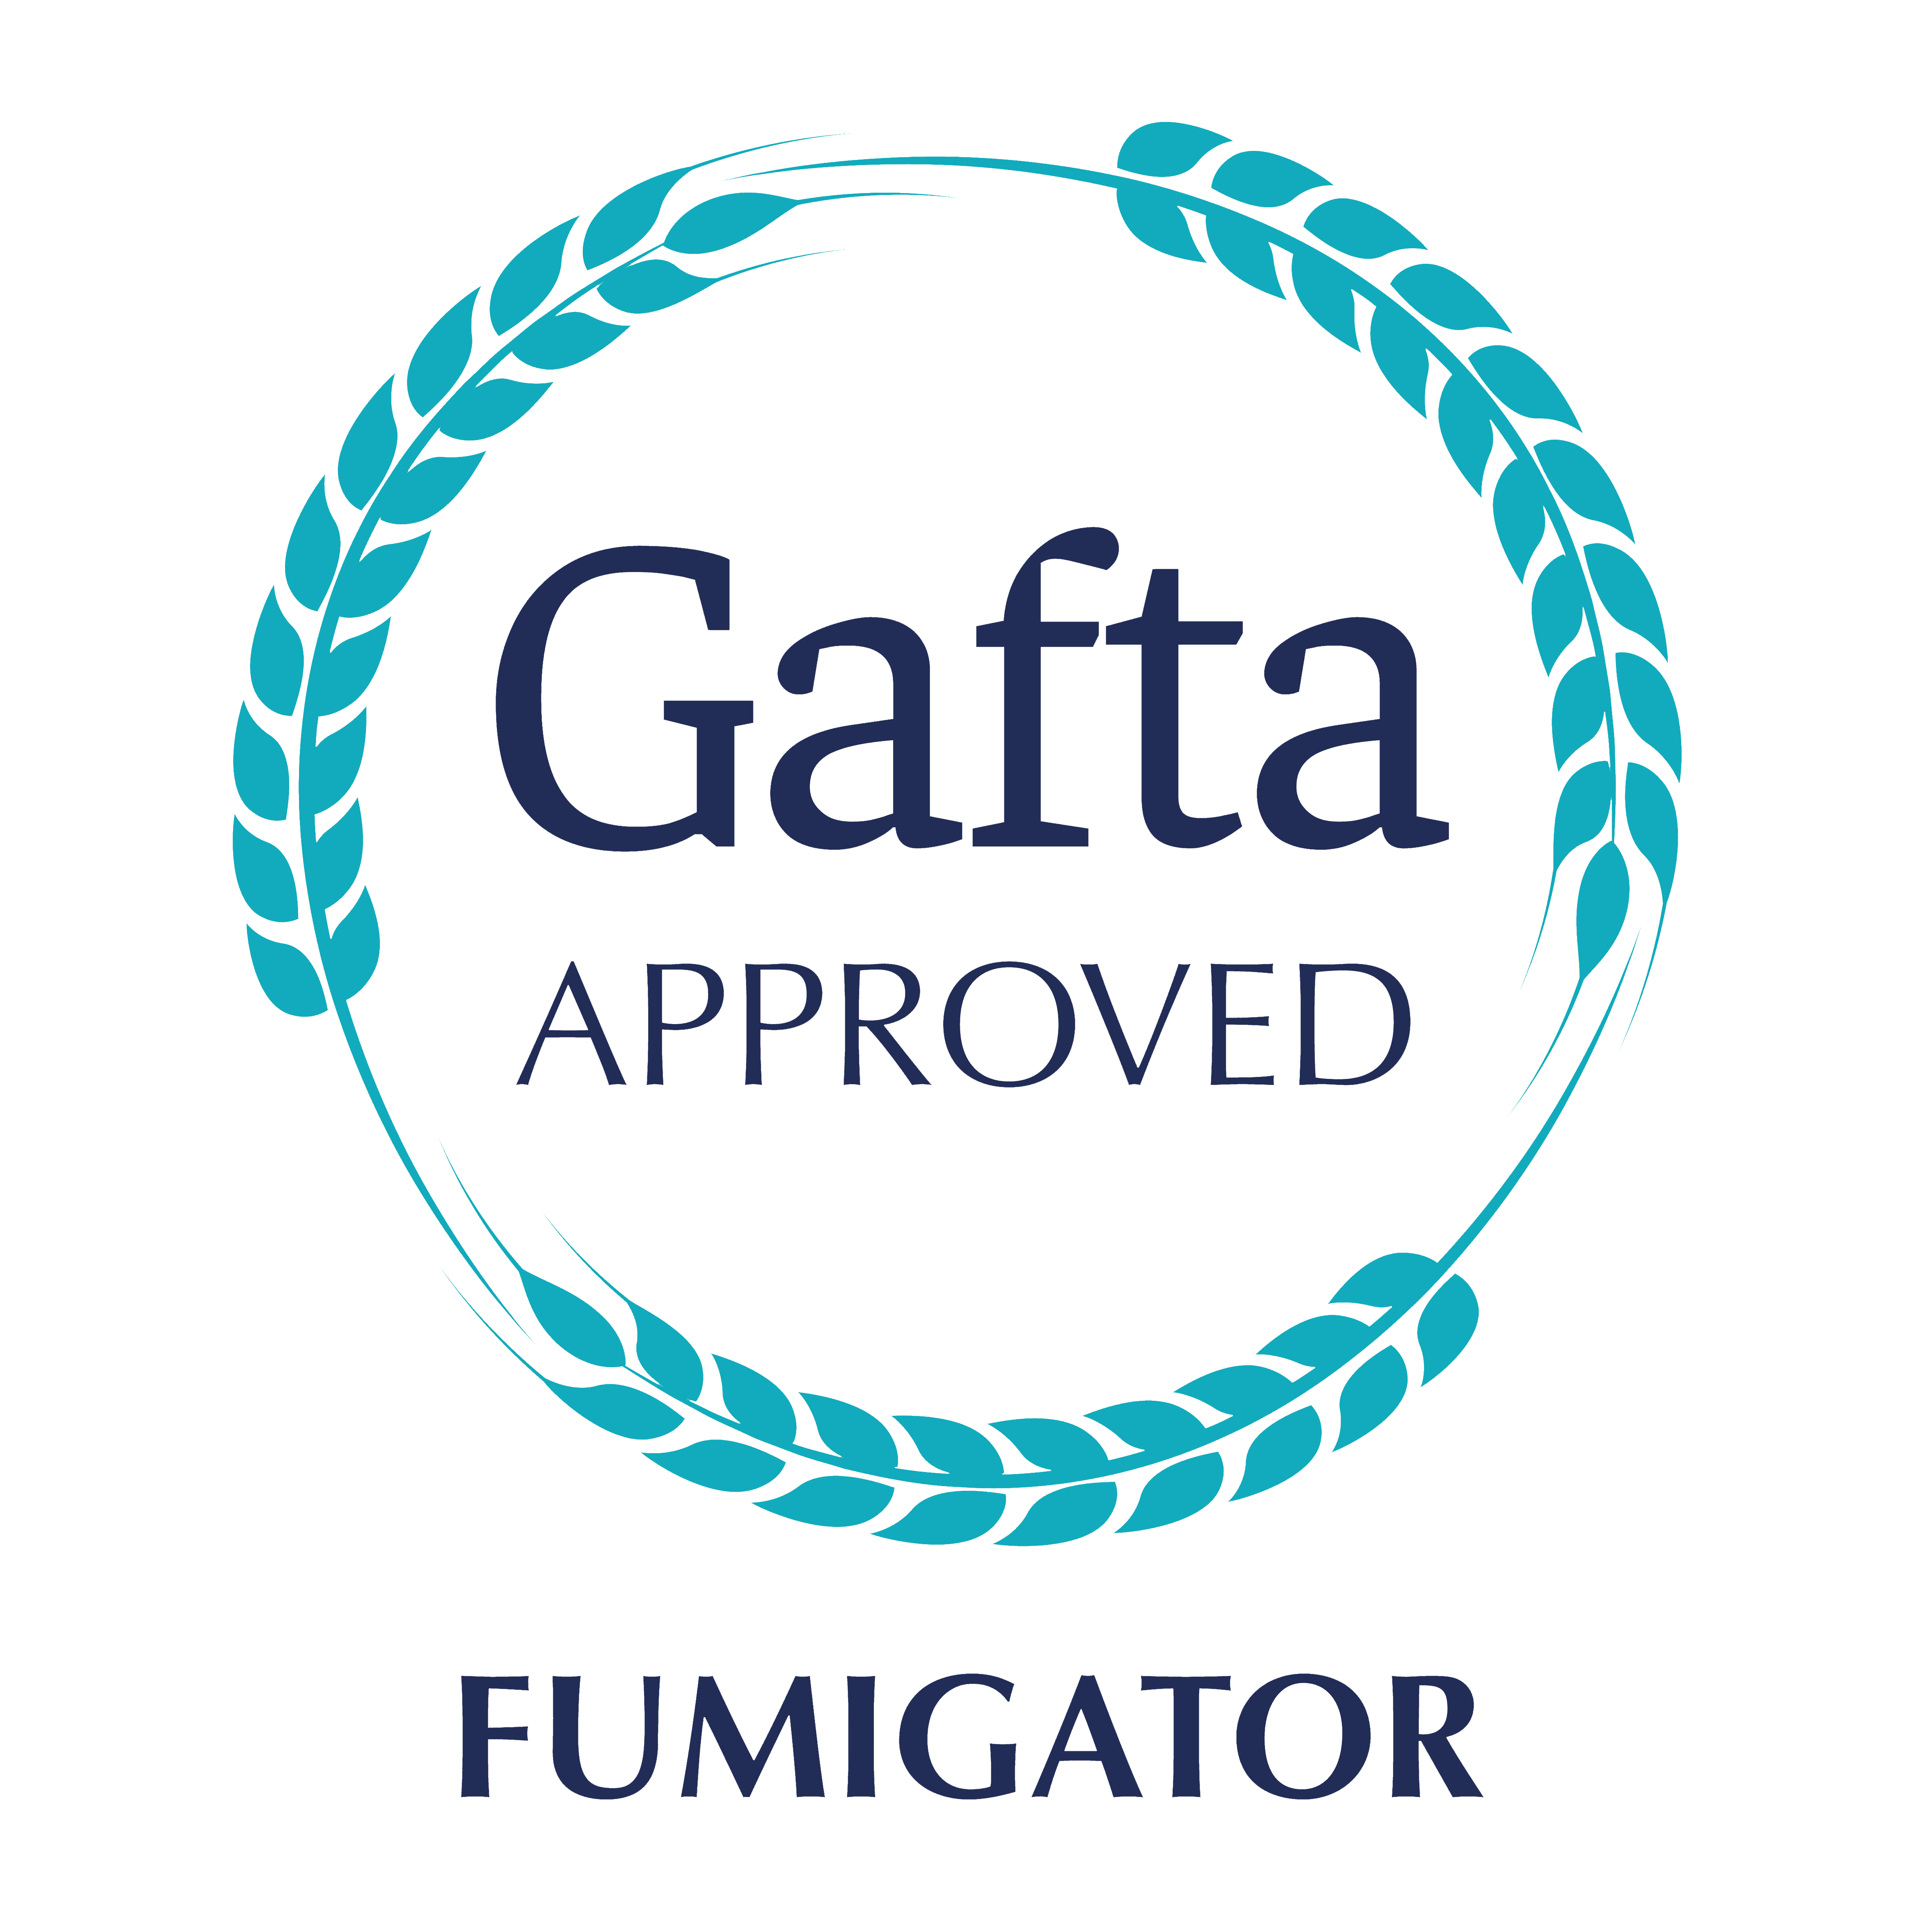 gafta-approved-fumigator-lo.png